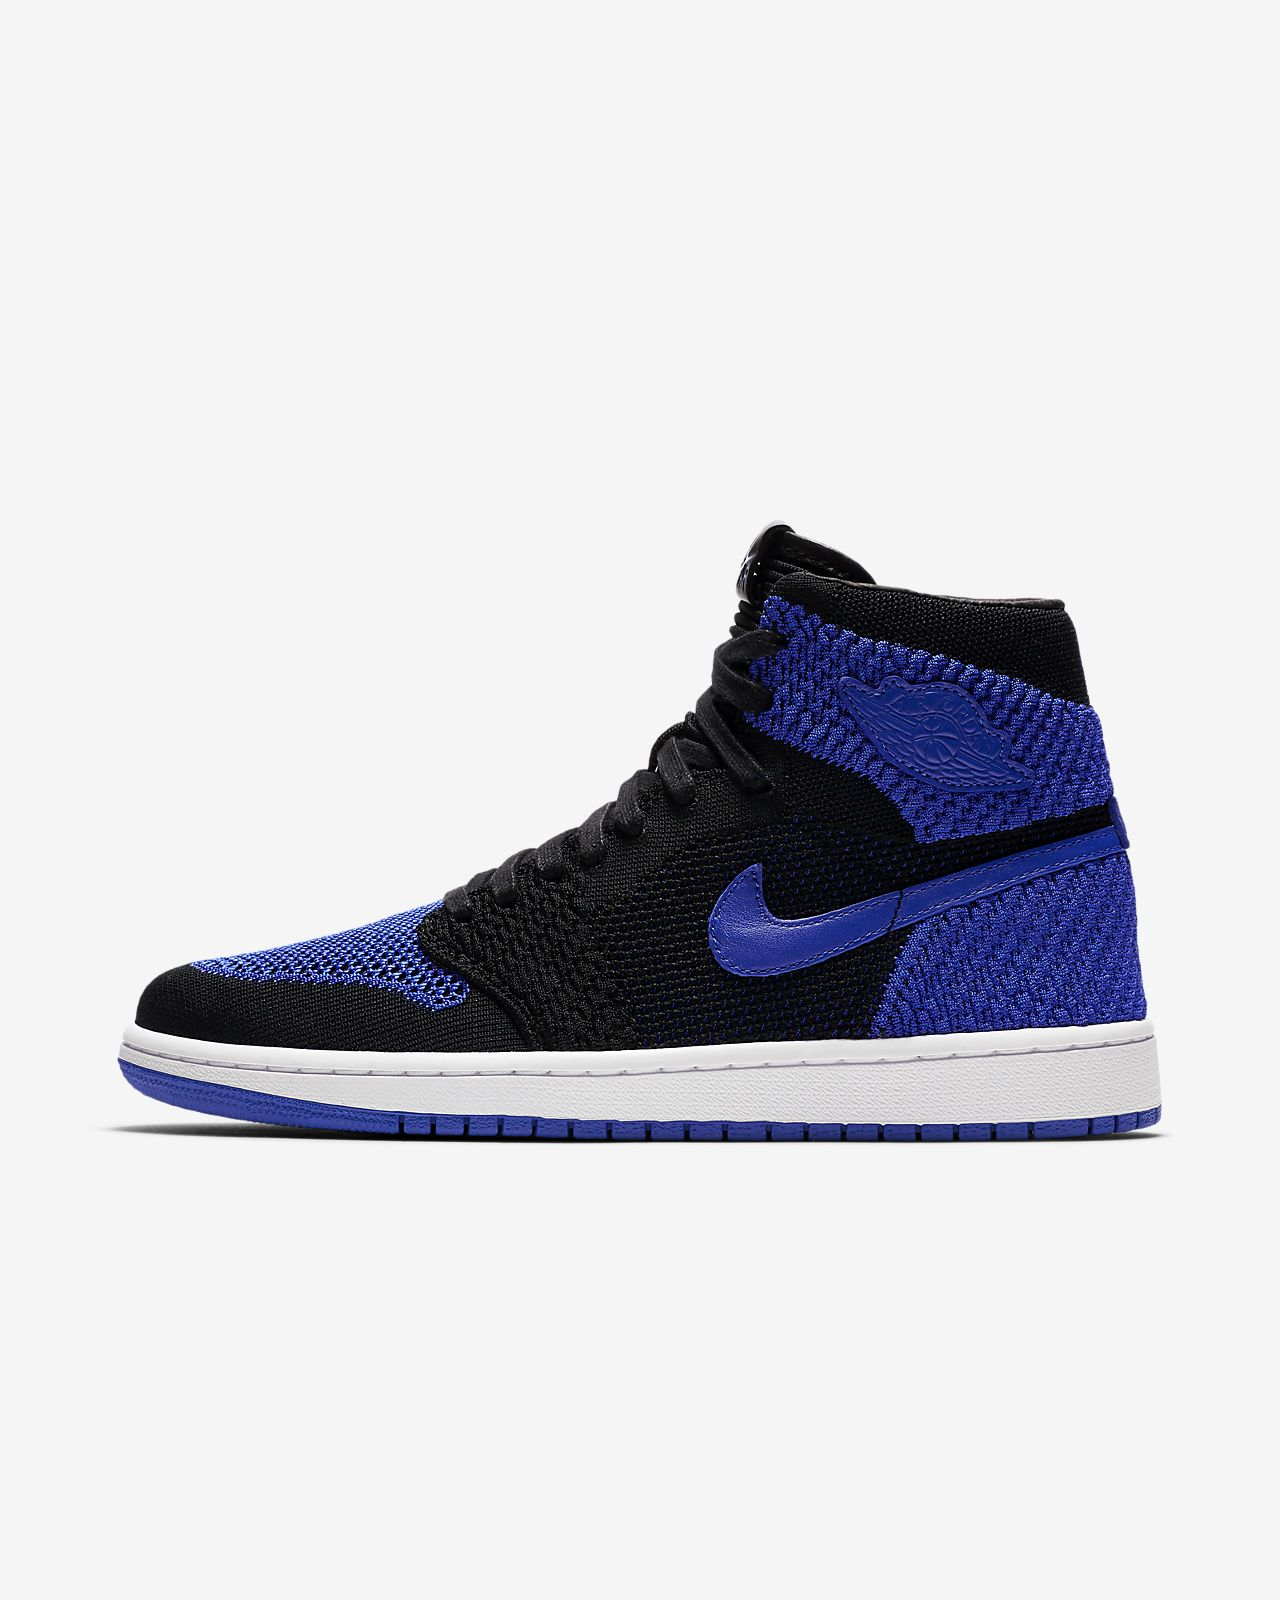 new product 30a30 e6068 ... Calzado para hombre Air Jordan 1 Retro High Flyknit